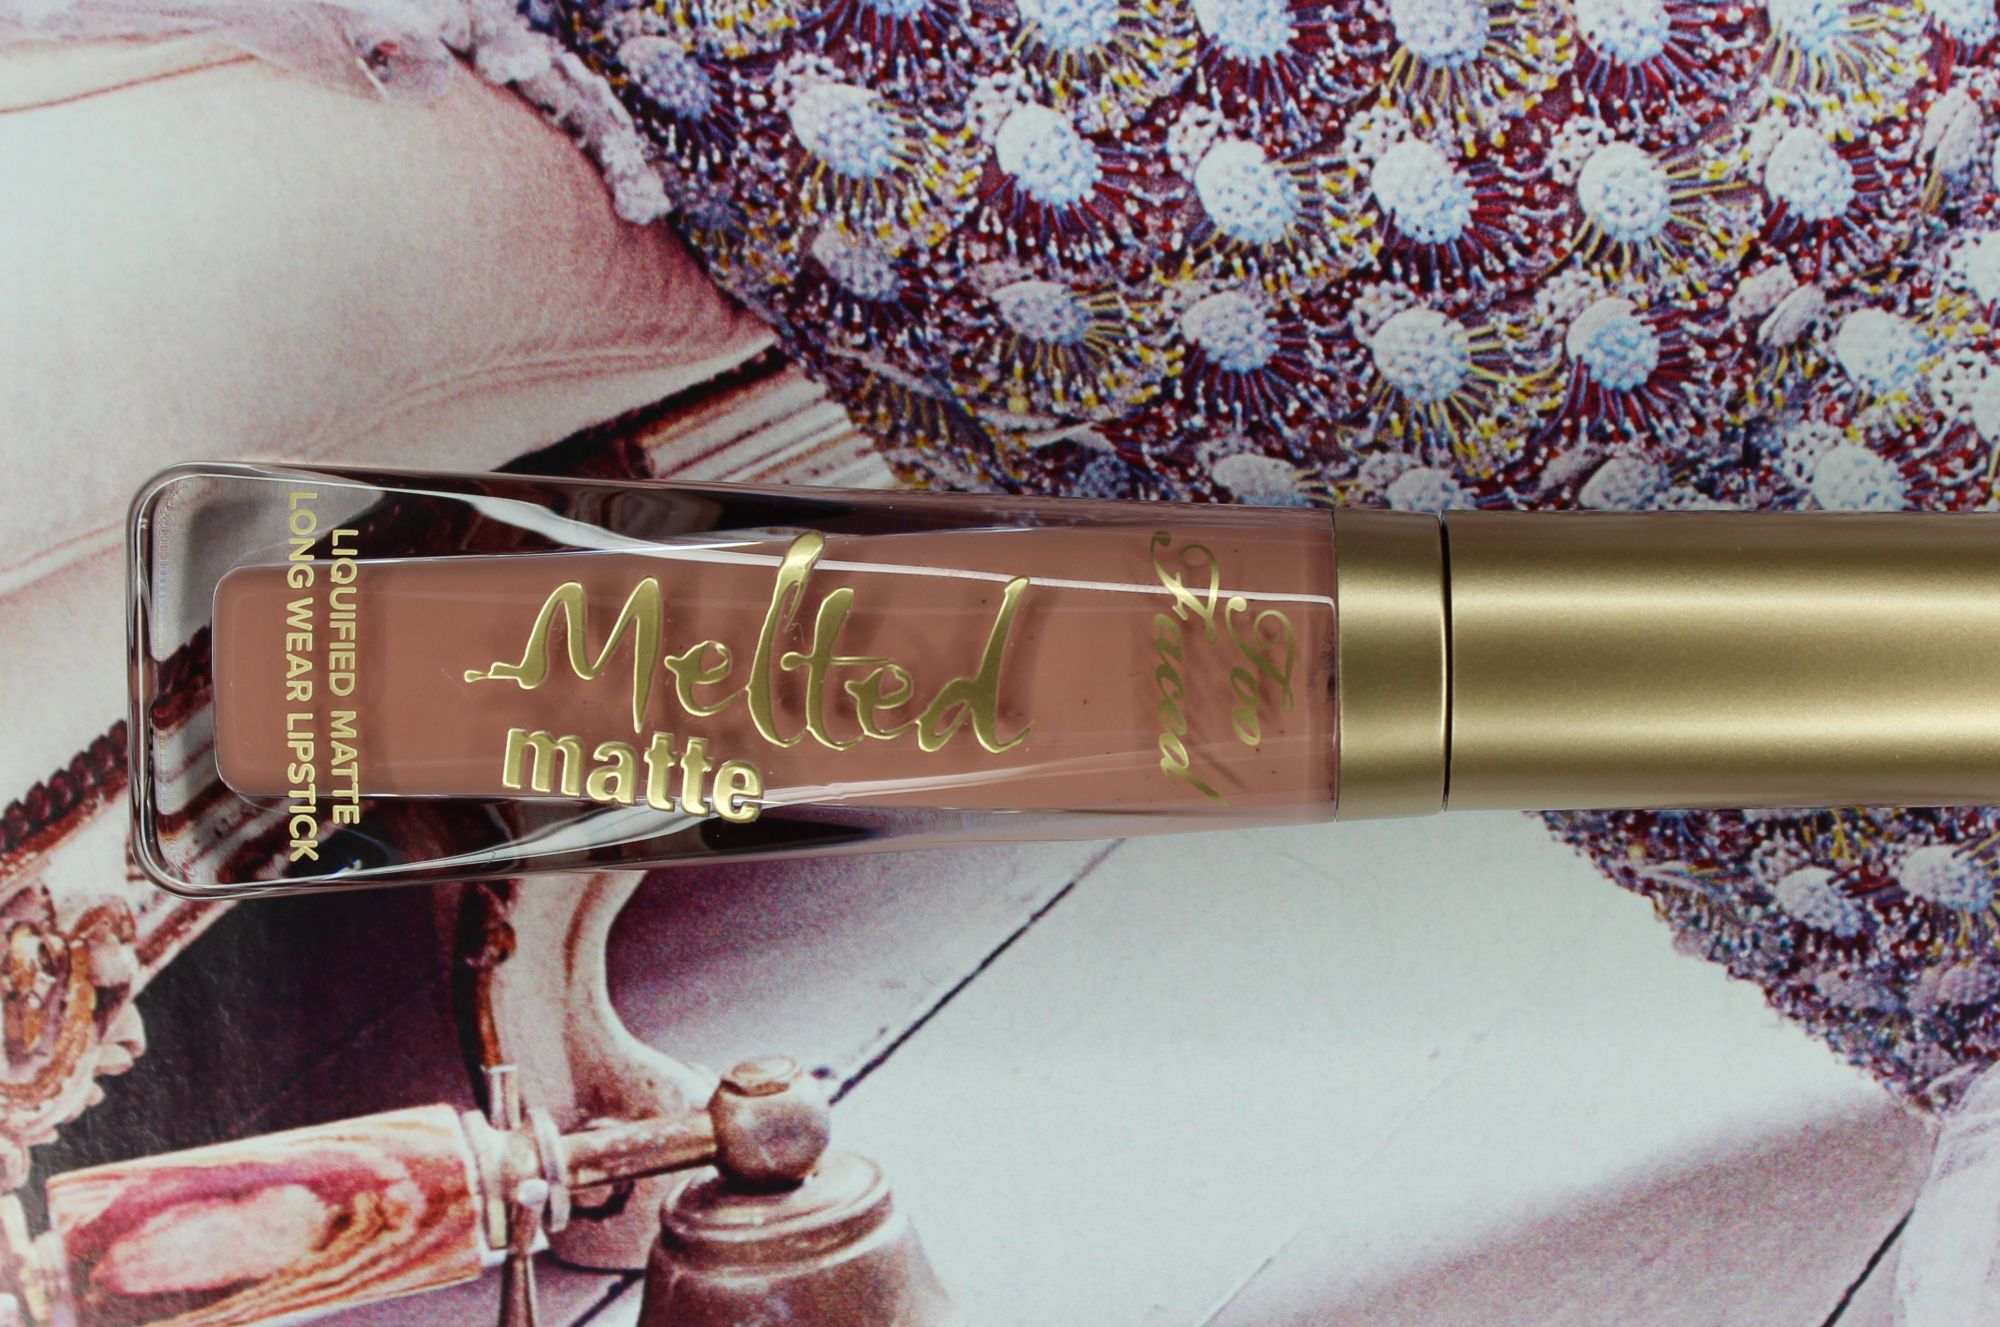 TOP 16 - Too Faced Melted Matte Lipstick in Child Star 1